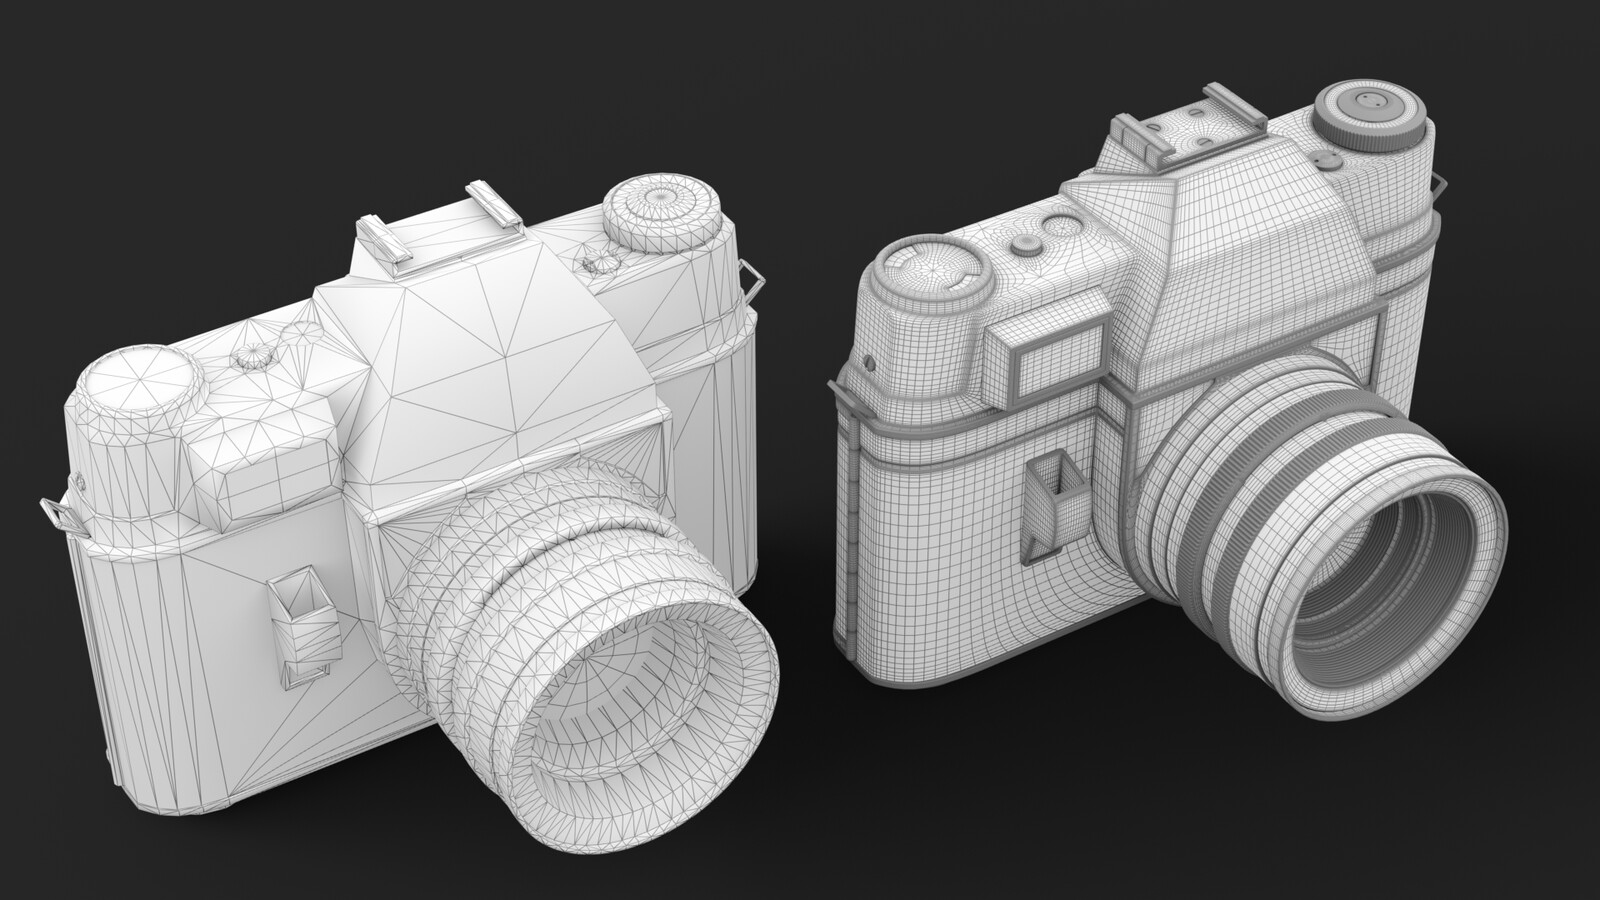 Low poly and high poly wireframes